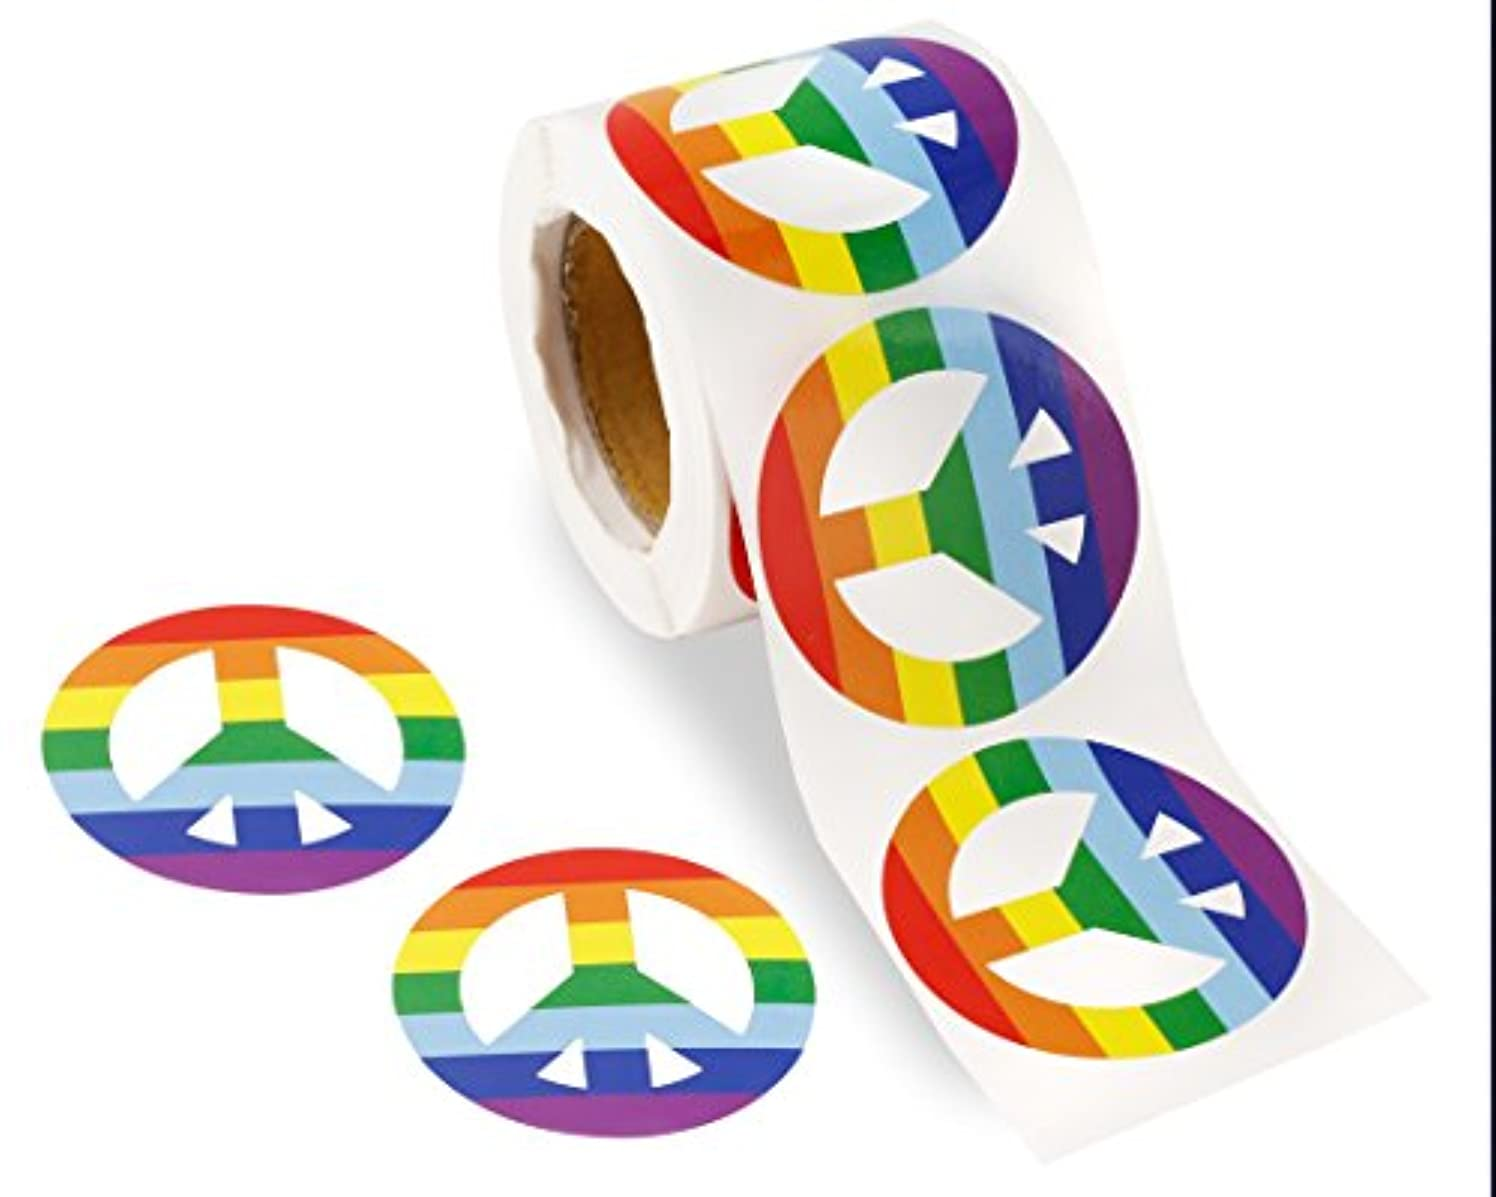 250 Gay Pride Peace Sign Rainbow Stickers on a Roll - Peace Sign Shaped (250 Stickers) - Support LGBT Causes